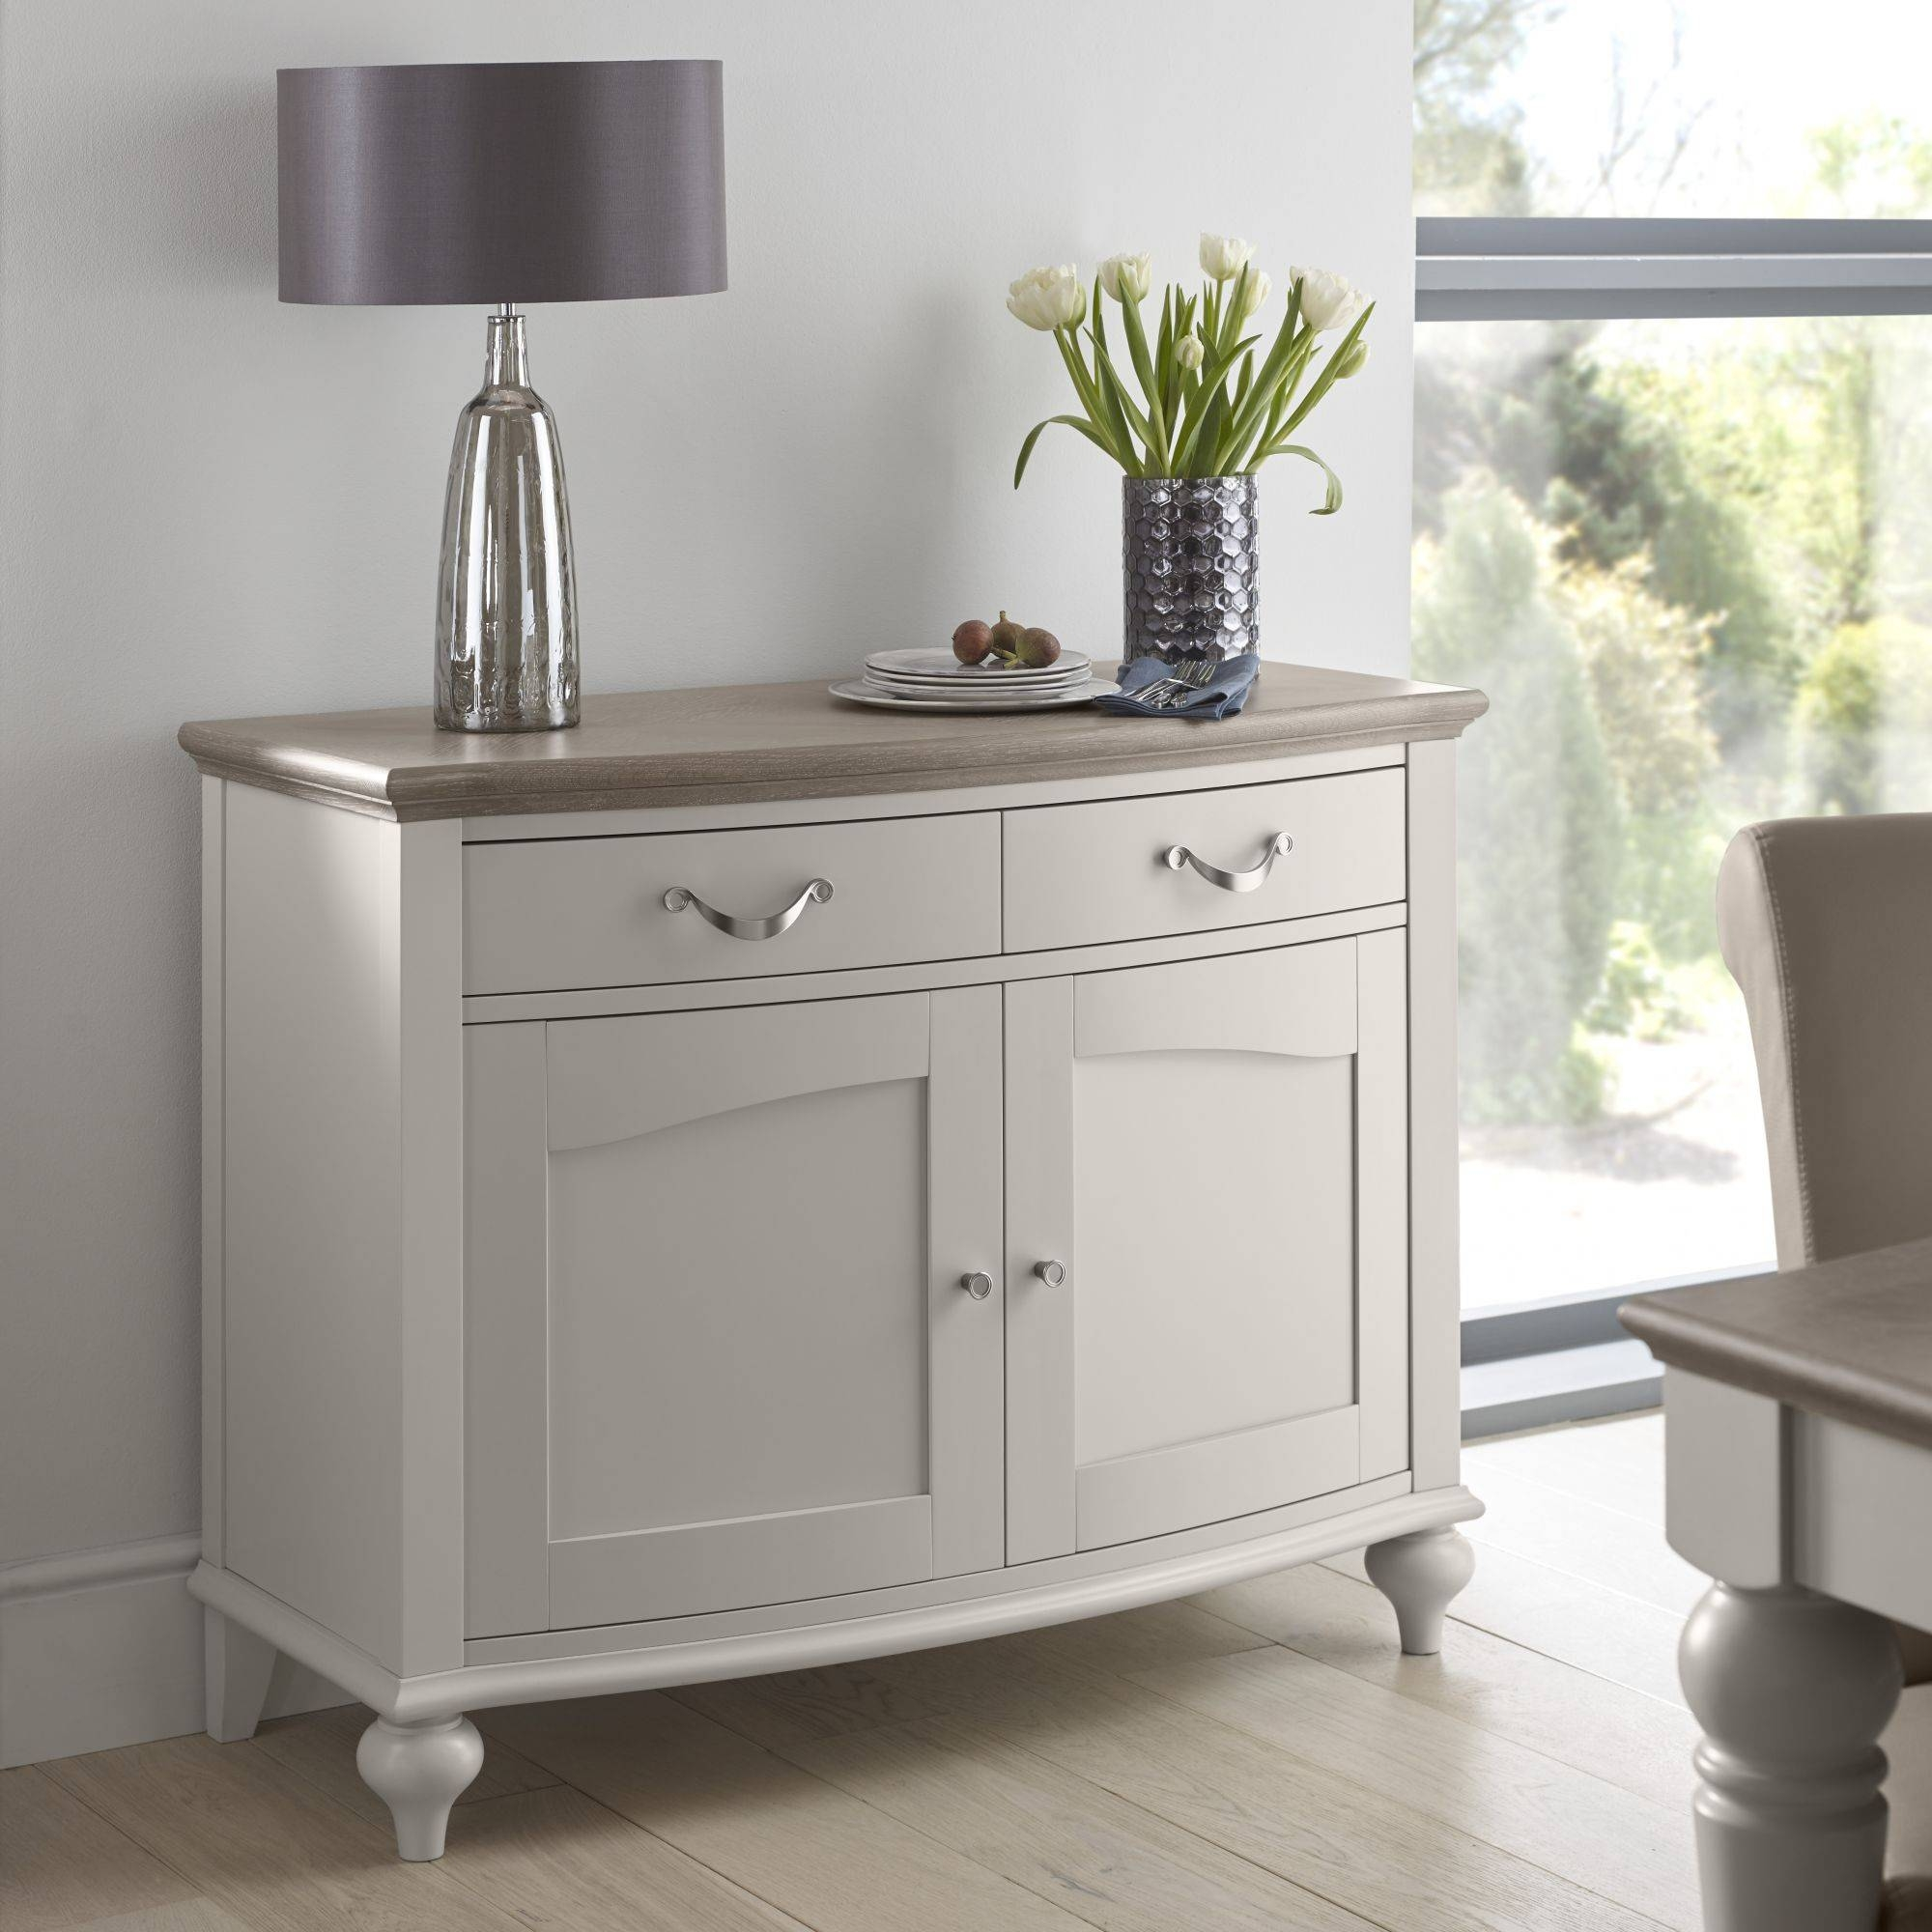 The Haven Home Interiors | Havenfurniture.co.uk | Furniture intended for Grey Sideboards (Image 27 of 30)